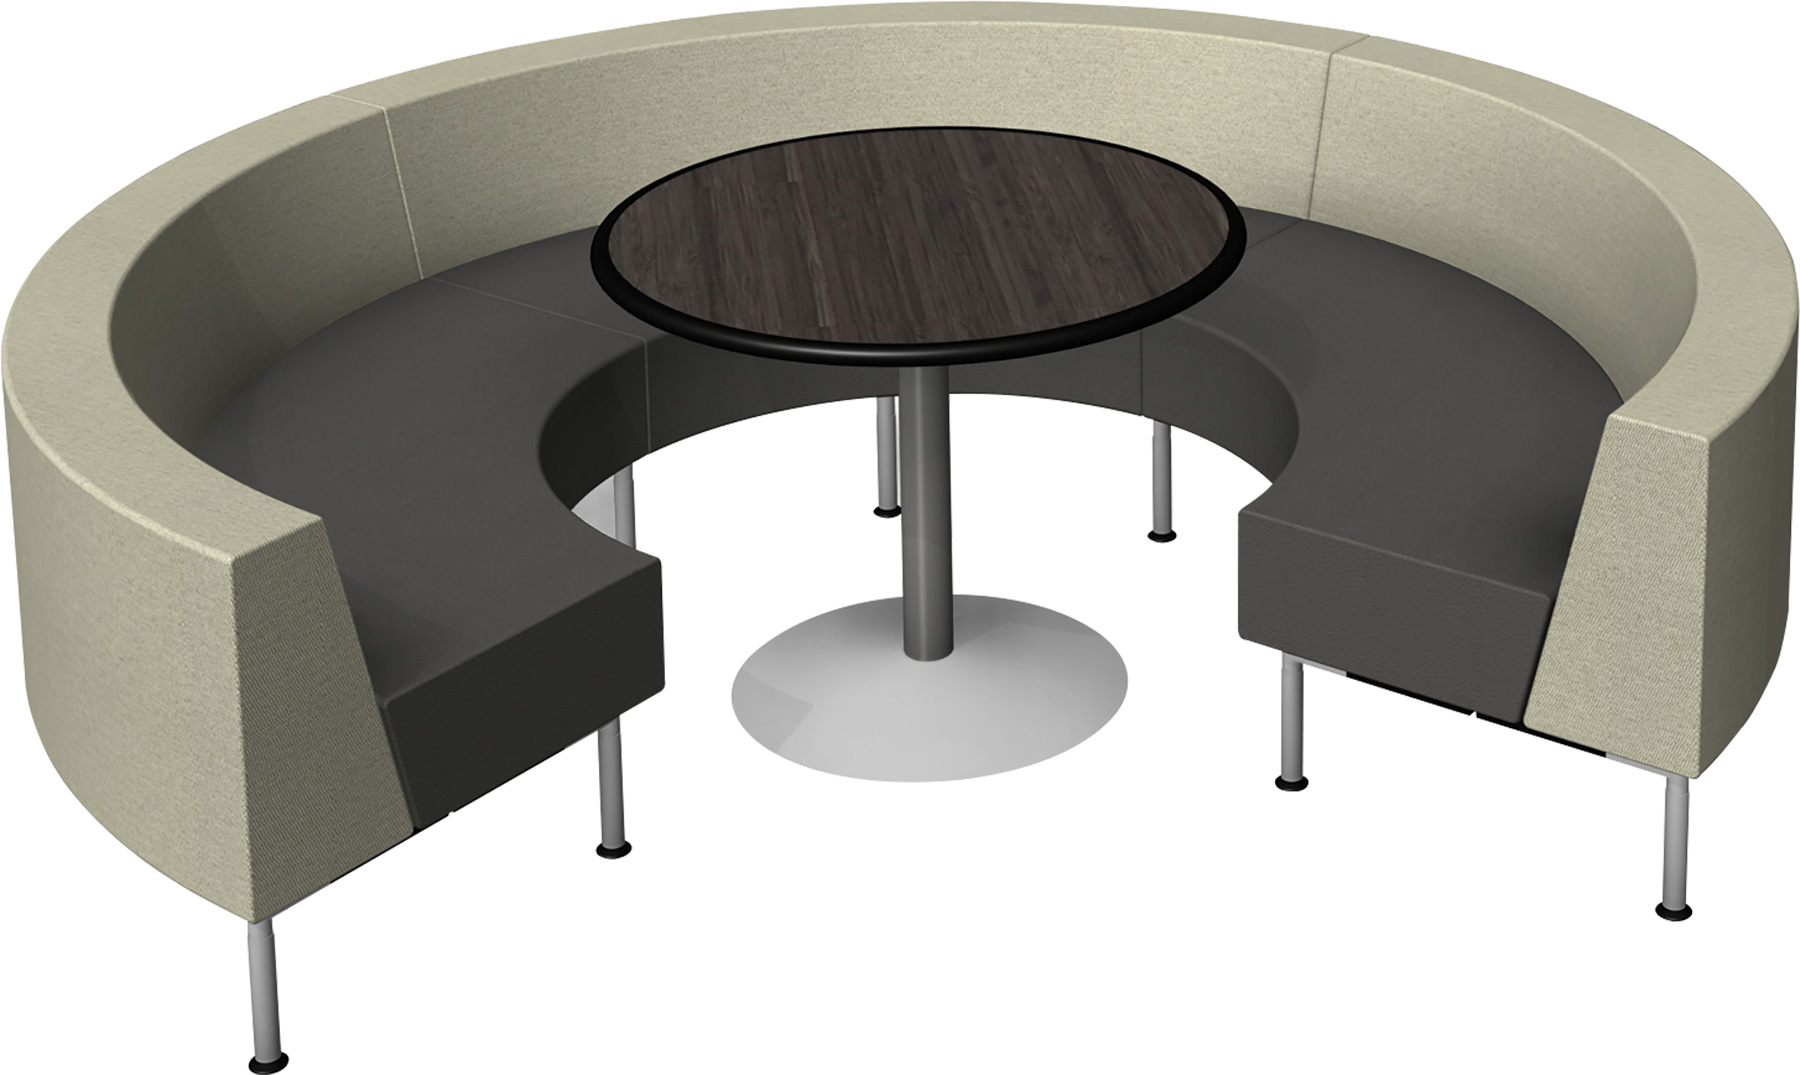 The Lower Tiered Backs Offer Nice Solutions For Reception Seating And Open  Spaces With The S Configuration.